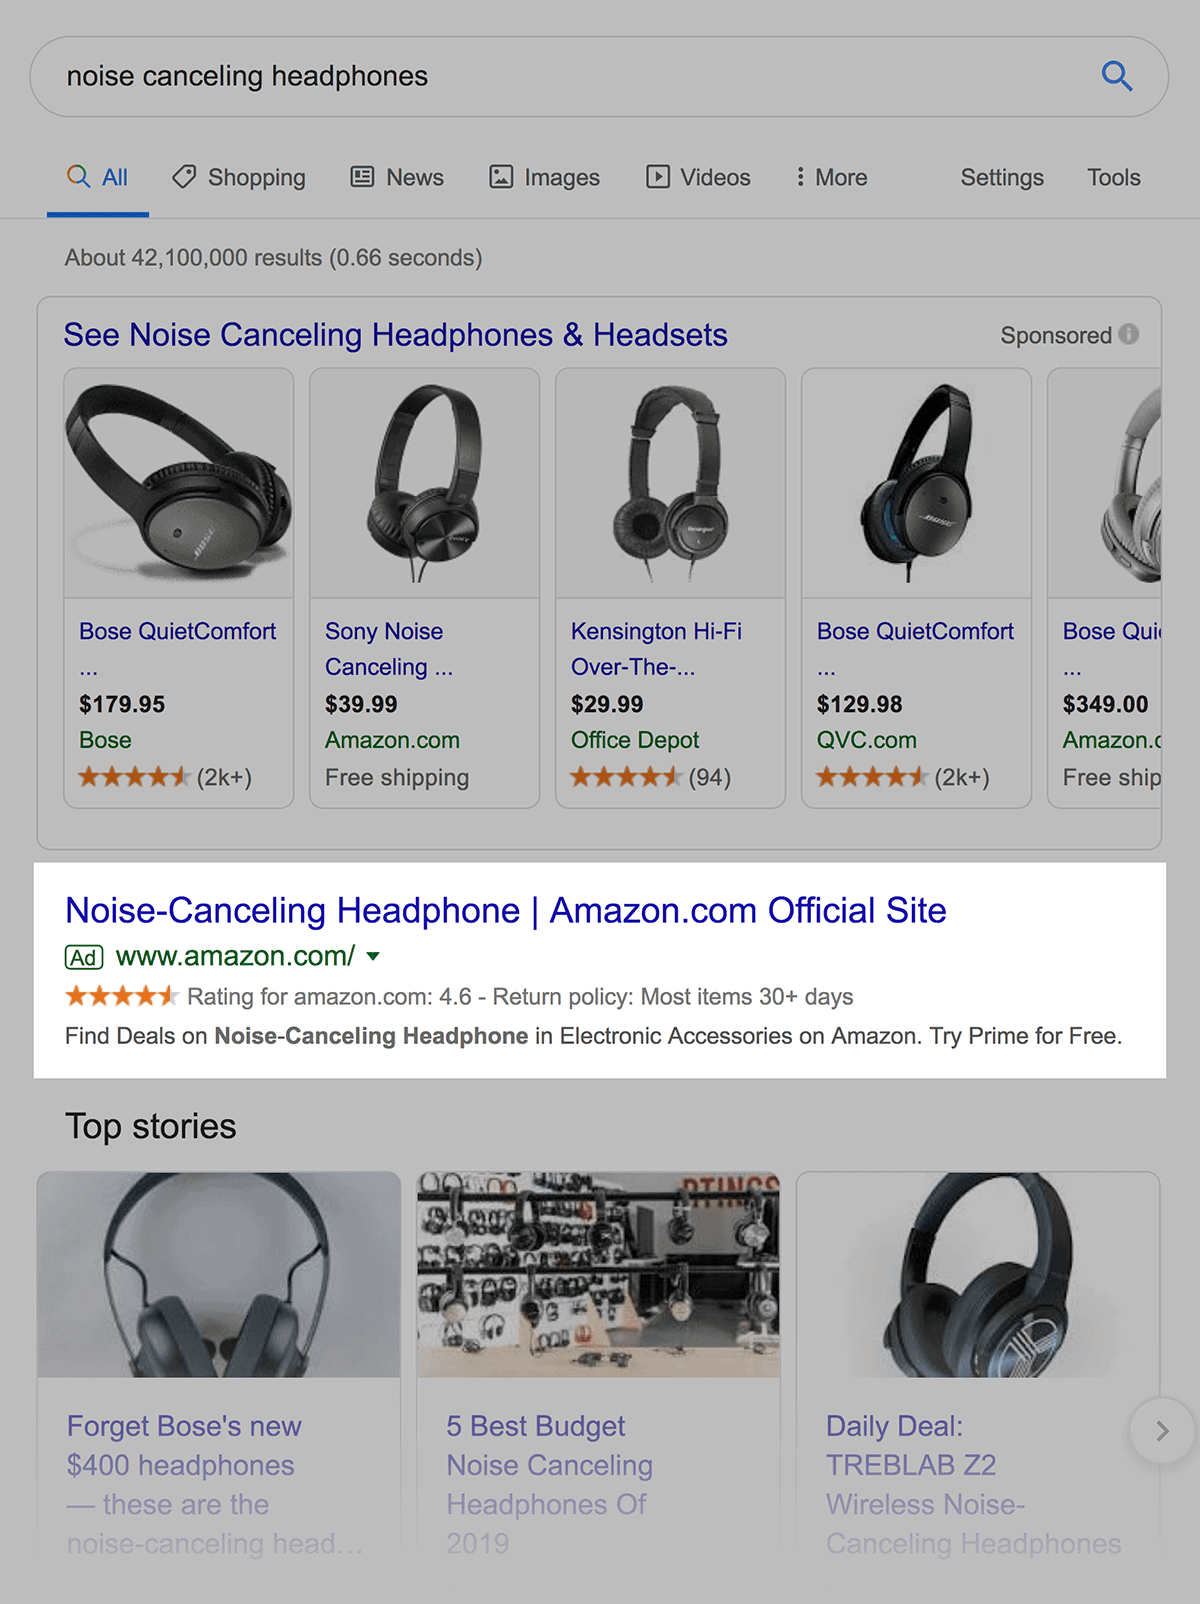 Product Listing Ads above traditional ads